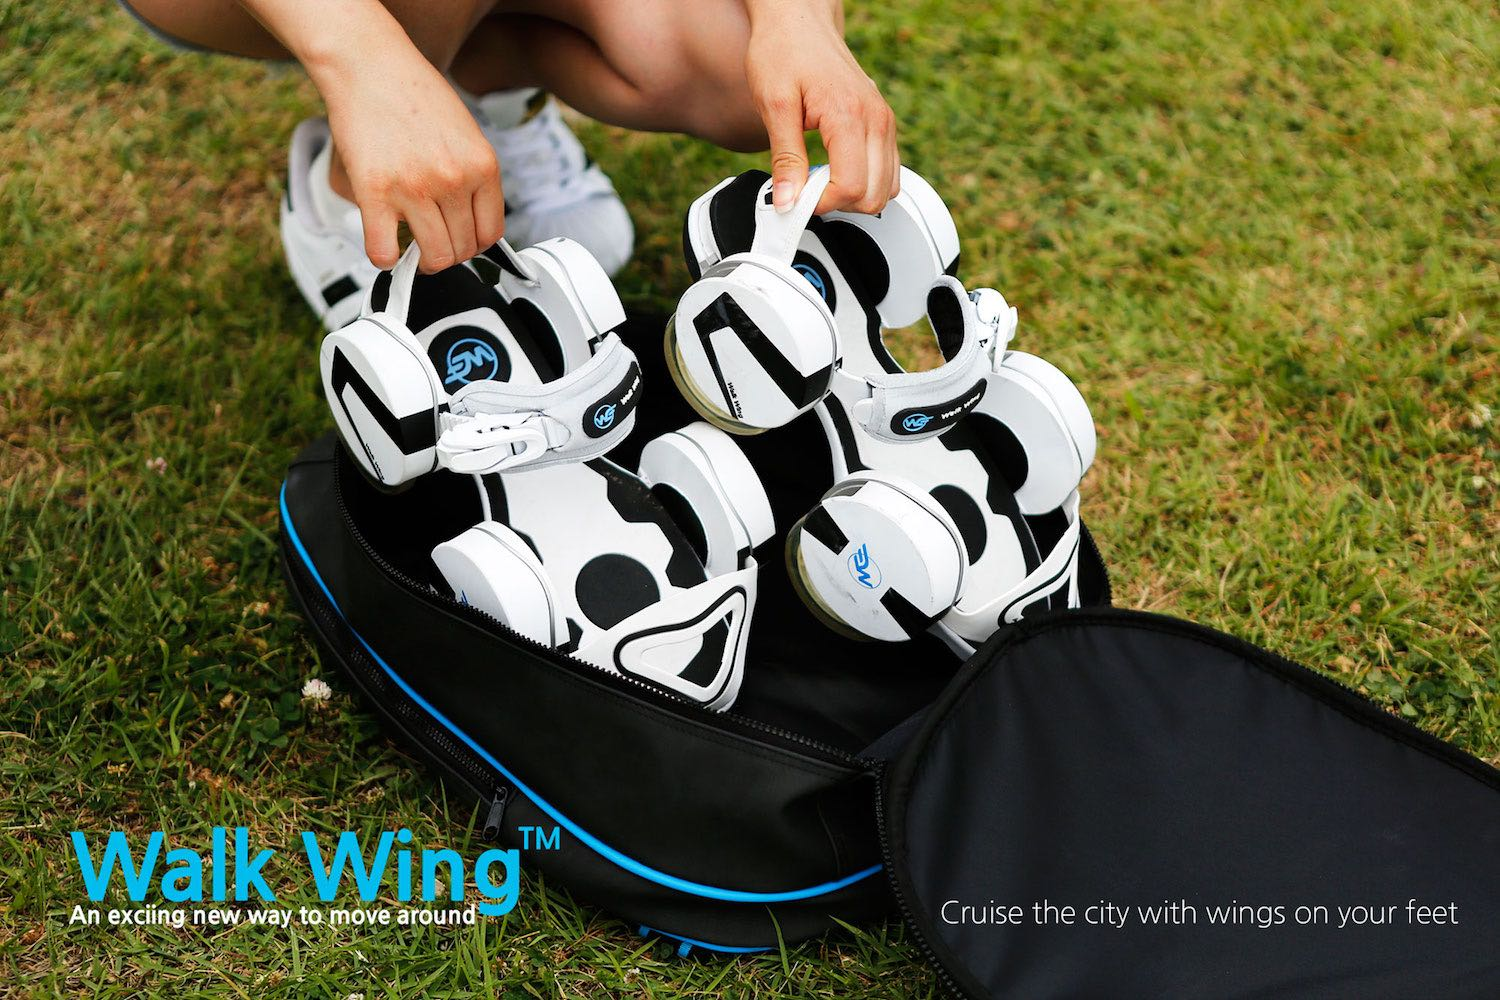 Walk Wing – Retractable Wheels Slip Over Your Shoes